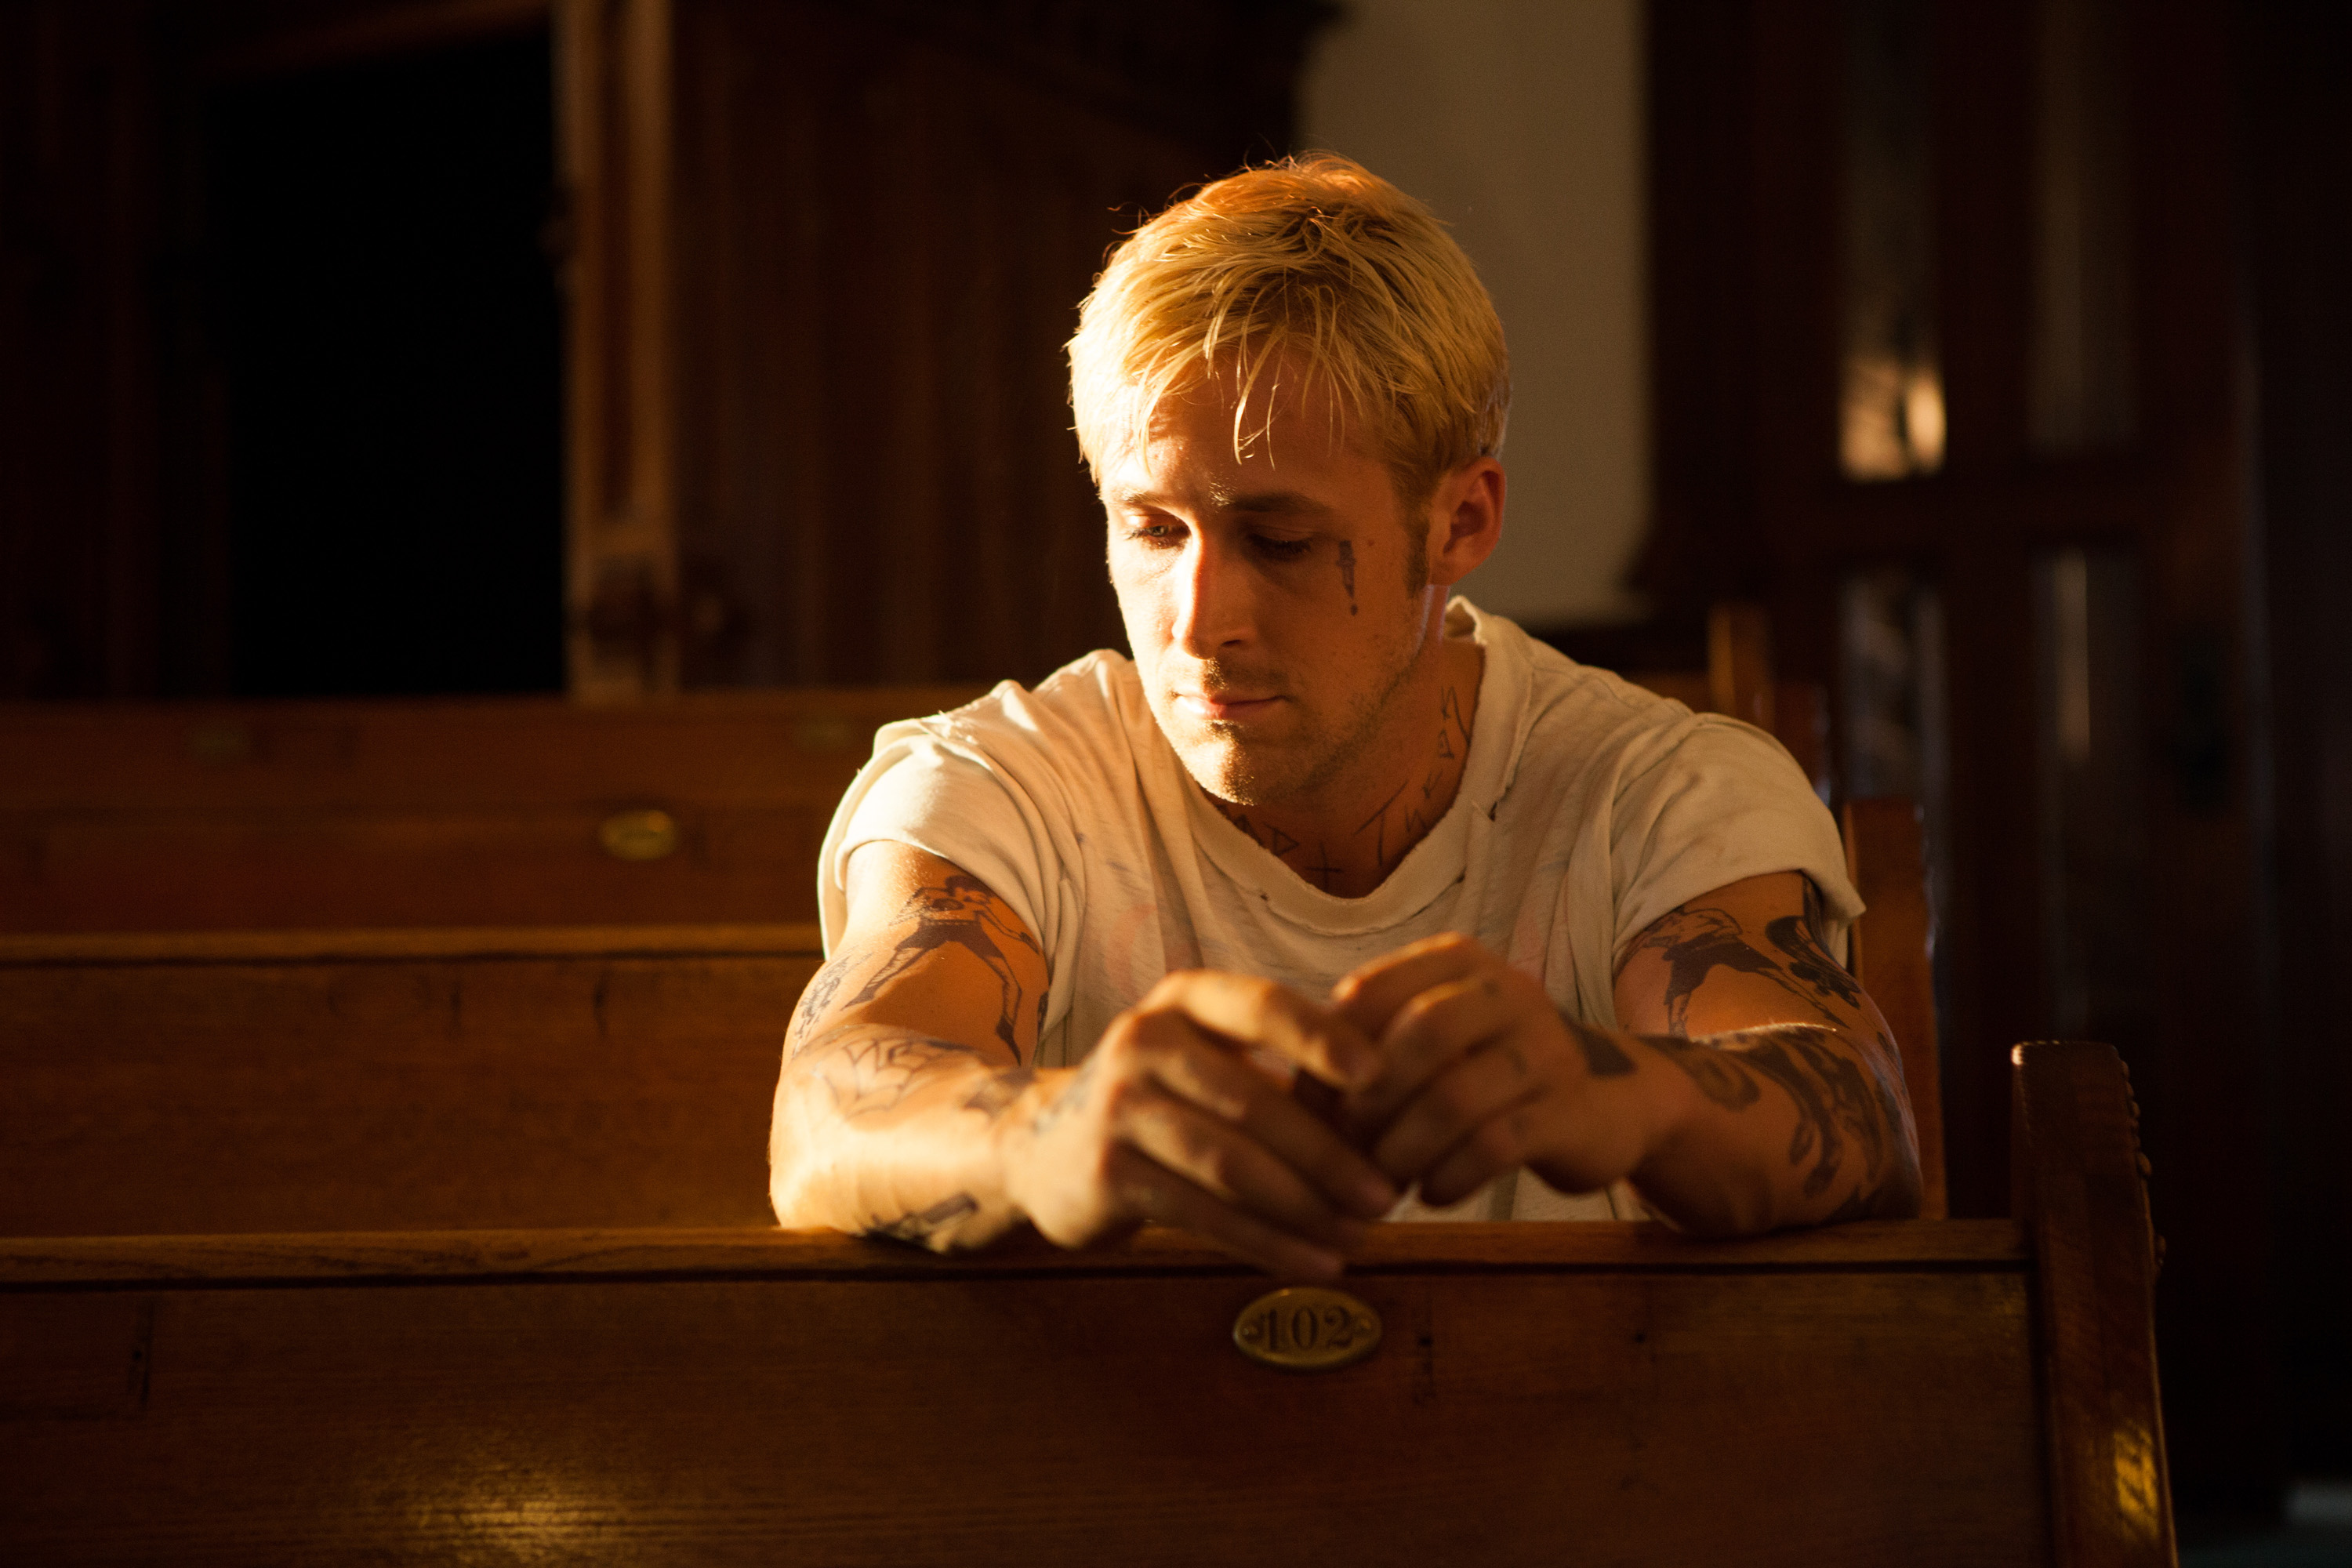 4072 D001 00290 New Images From The Place Beyond The Pines Released